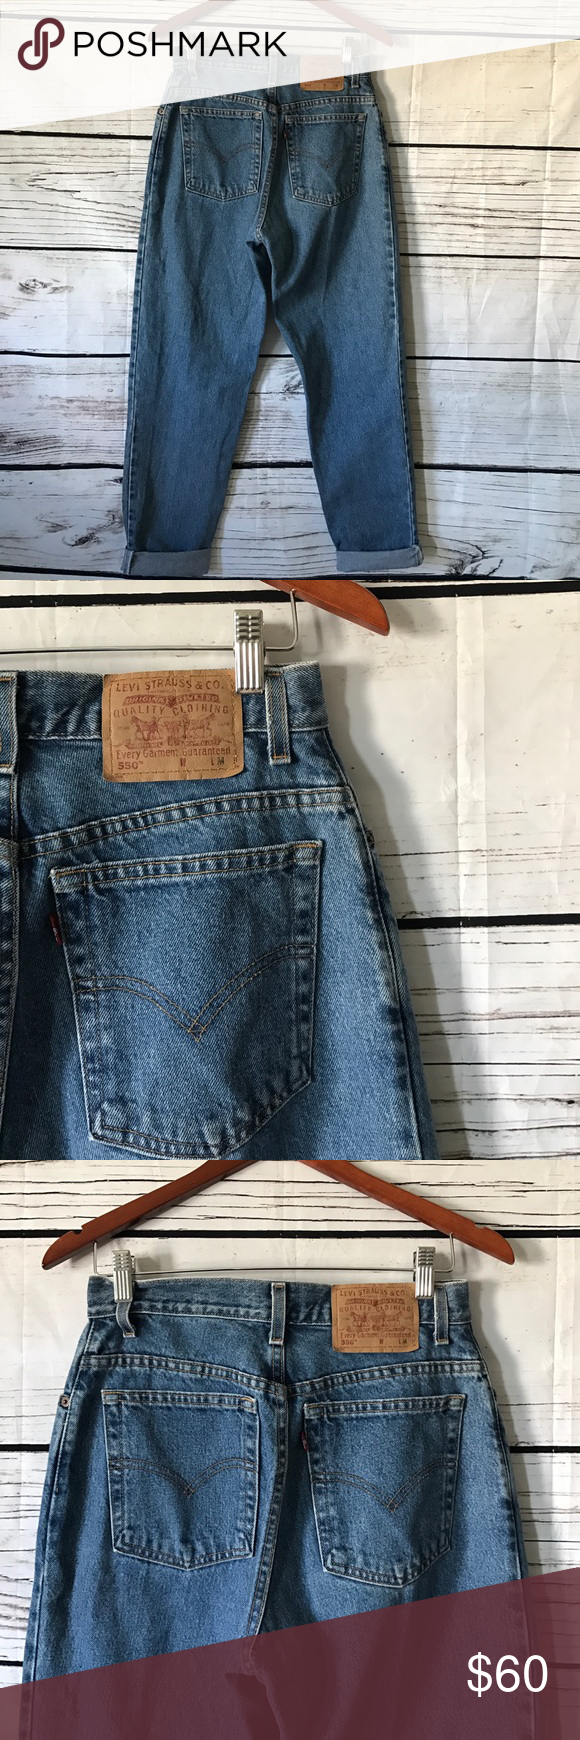 Levi's 550 tapered high waisted jeans Previously owned hard to find.vintage 80's high Waist, relax fit , tapered mom jeans. No rips or stains. Levi's Jeans